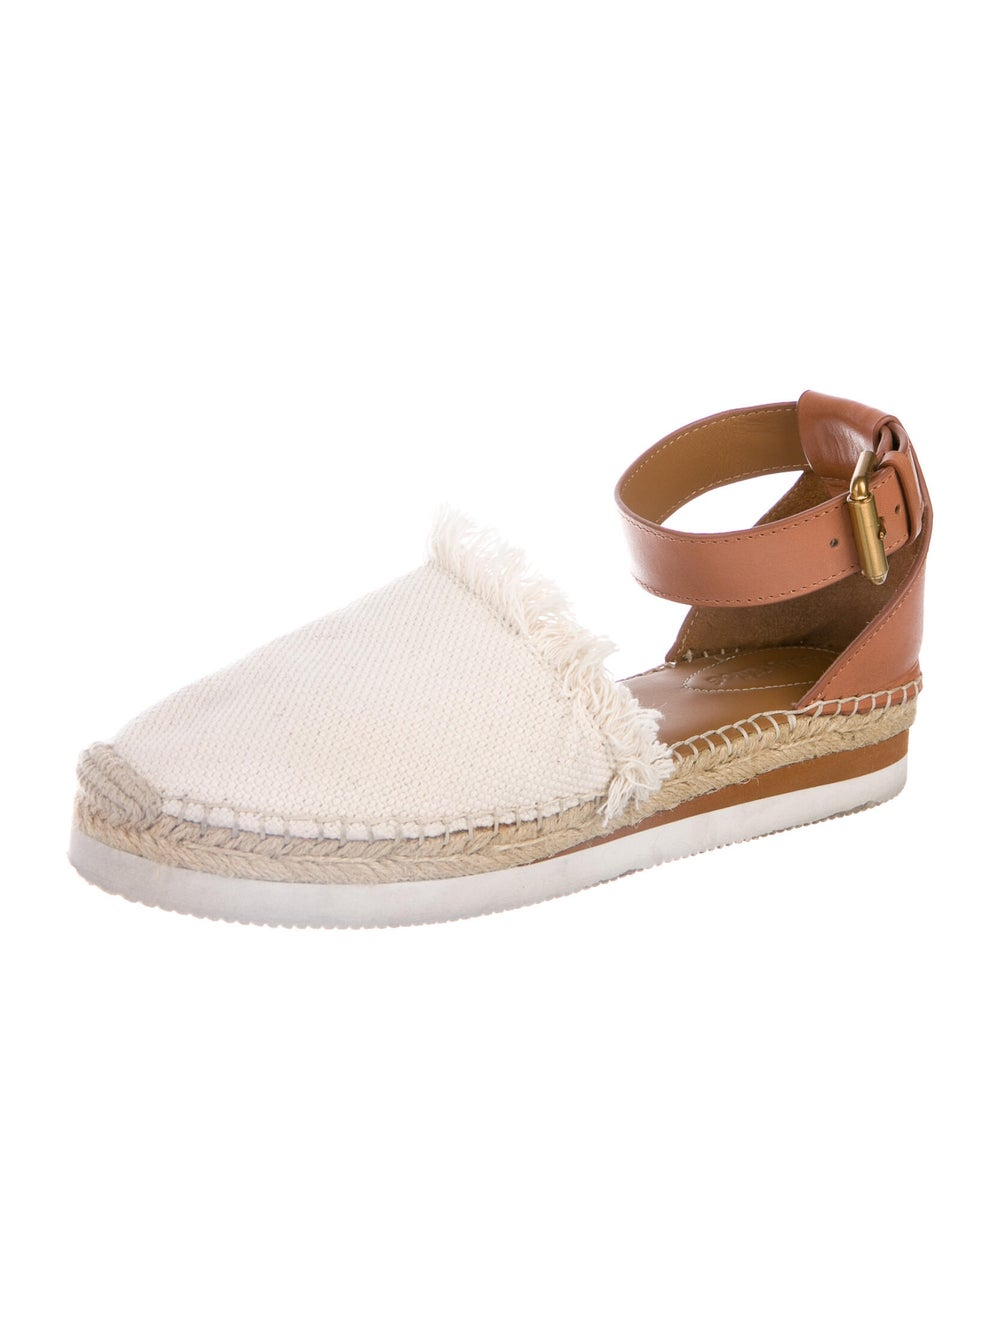 See by Chloé Espadrilles - image 2